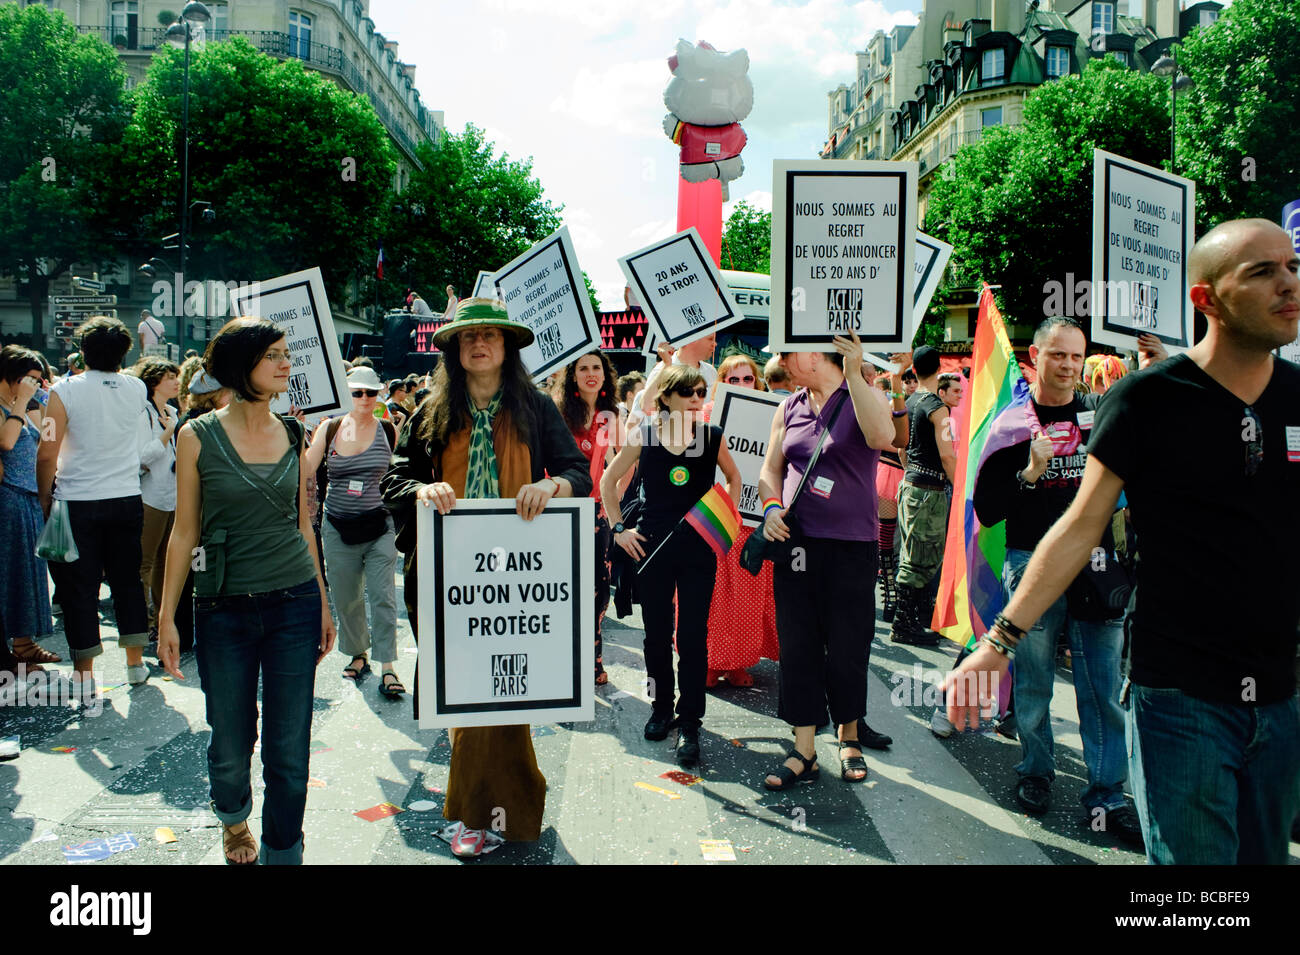 Paris France, Public Events, People Celebrating at the 'Gay Pride' Parade 'Act Up' Anti AIDS Female - Stock Image